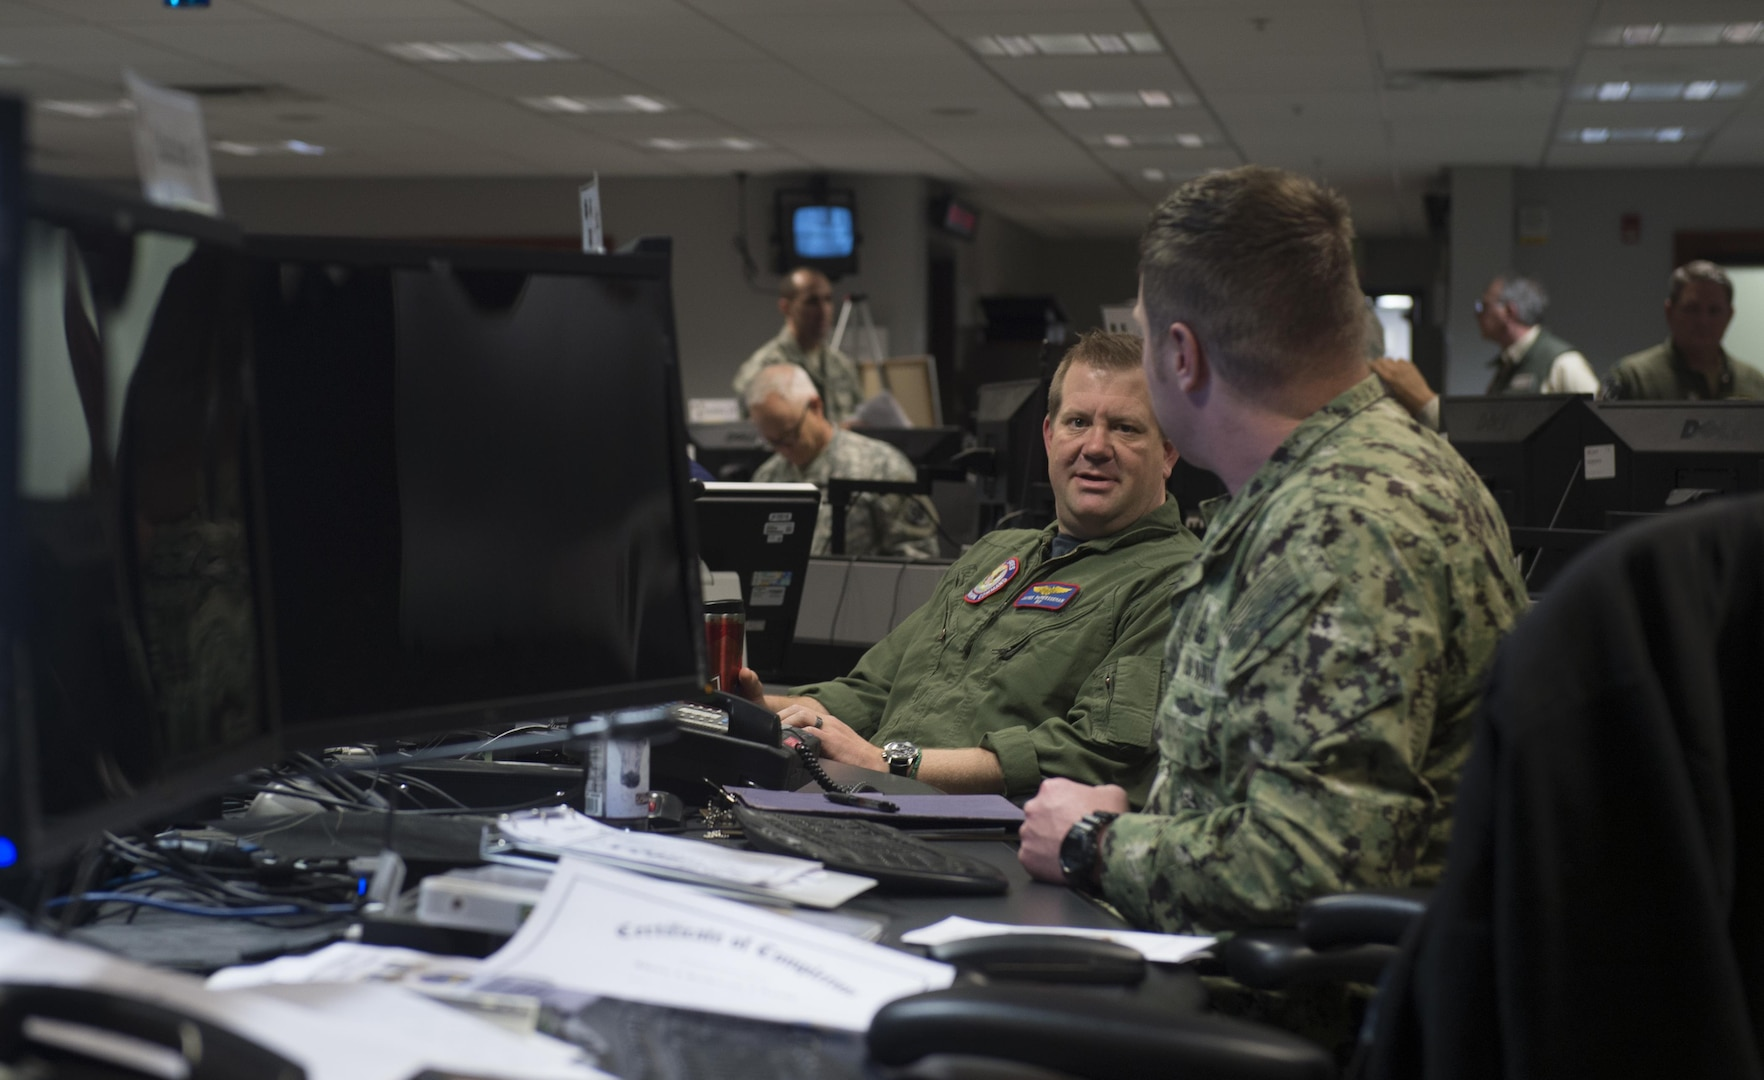 U.S. and Canadian armed forces Service members participating in The Vigilant Shield 2017 Field Training Exercise work in the joint operations center at headquarters Alaskan Command at Joint Base Elmendorf-Richardson, Alaska, 16 Oct., 2016.